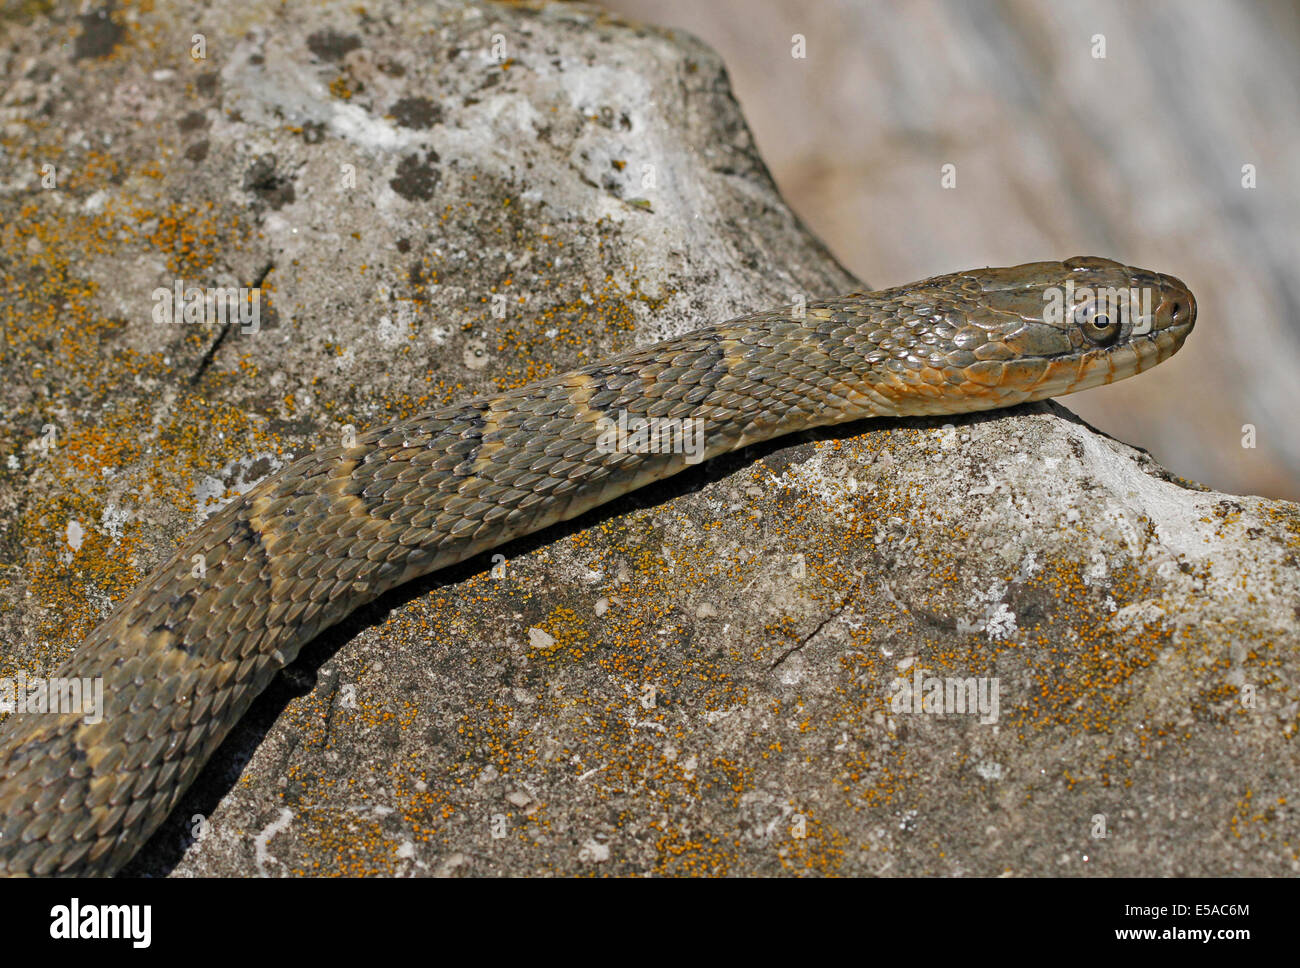 Lake Erie watersnake sunning itself on the rock near the water in Pelee Island, Ontario. - Stock Image